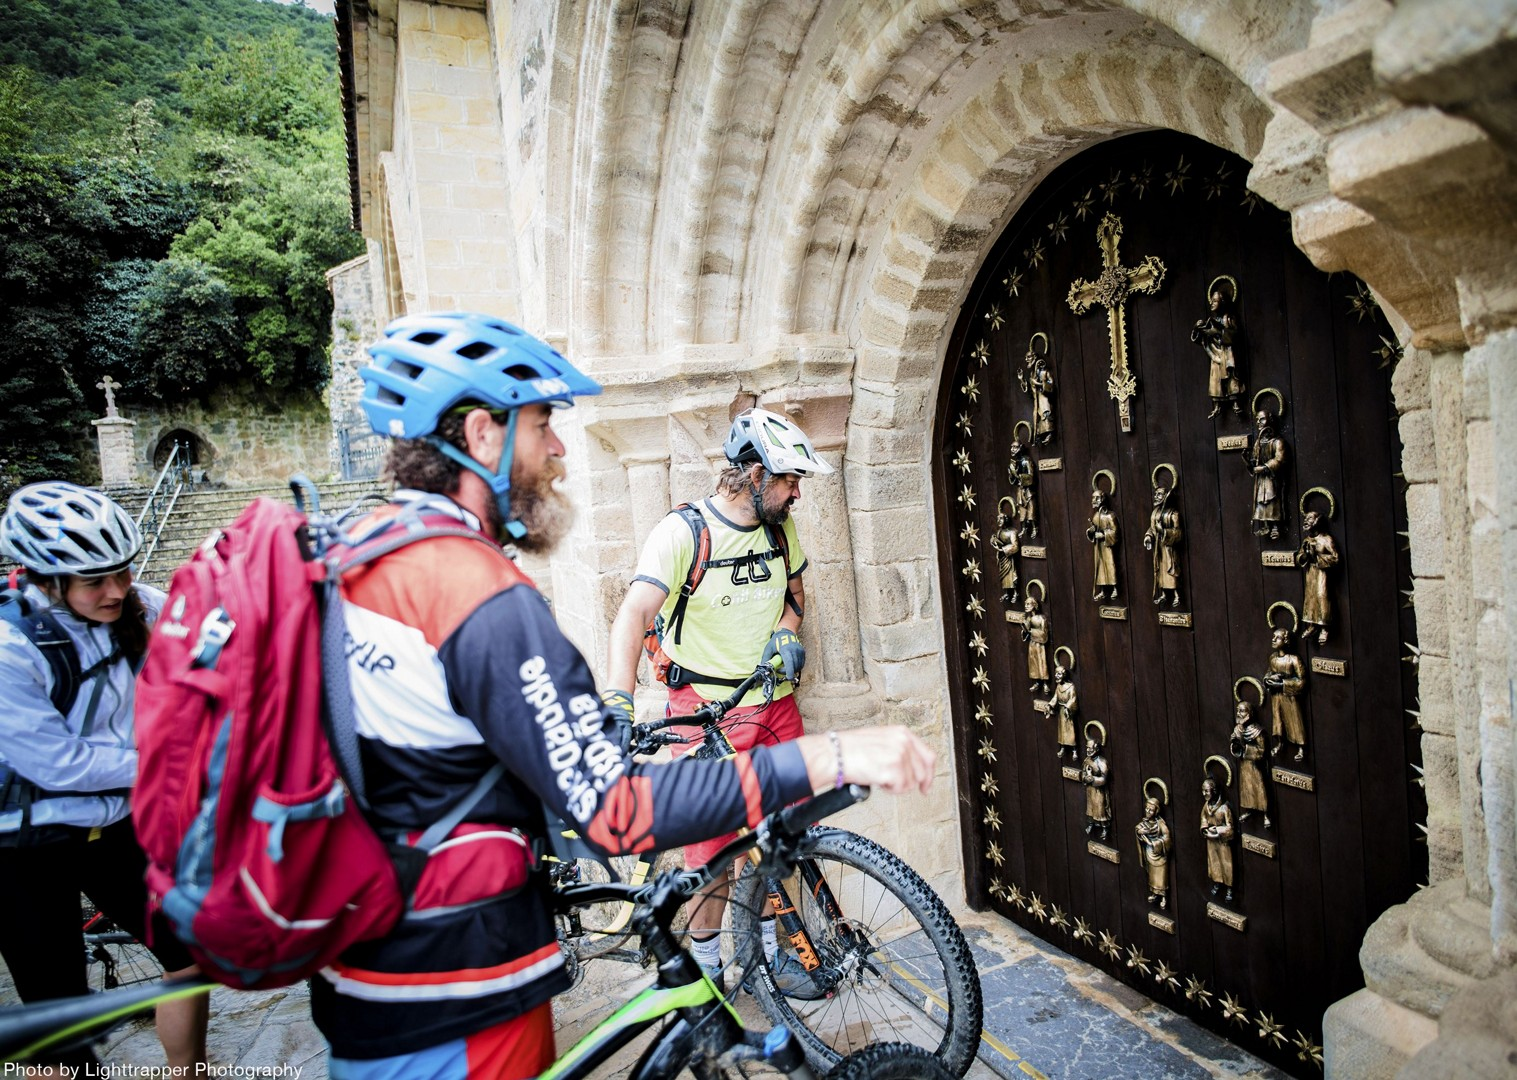 bike-pilgrims-trail-to-santiago-de-compostela-in-galicia.jpg - Spain - Camino Primitivo - Guided Mountain Biking Holiday - Mountain Biking